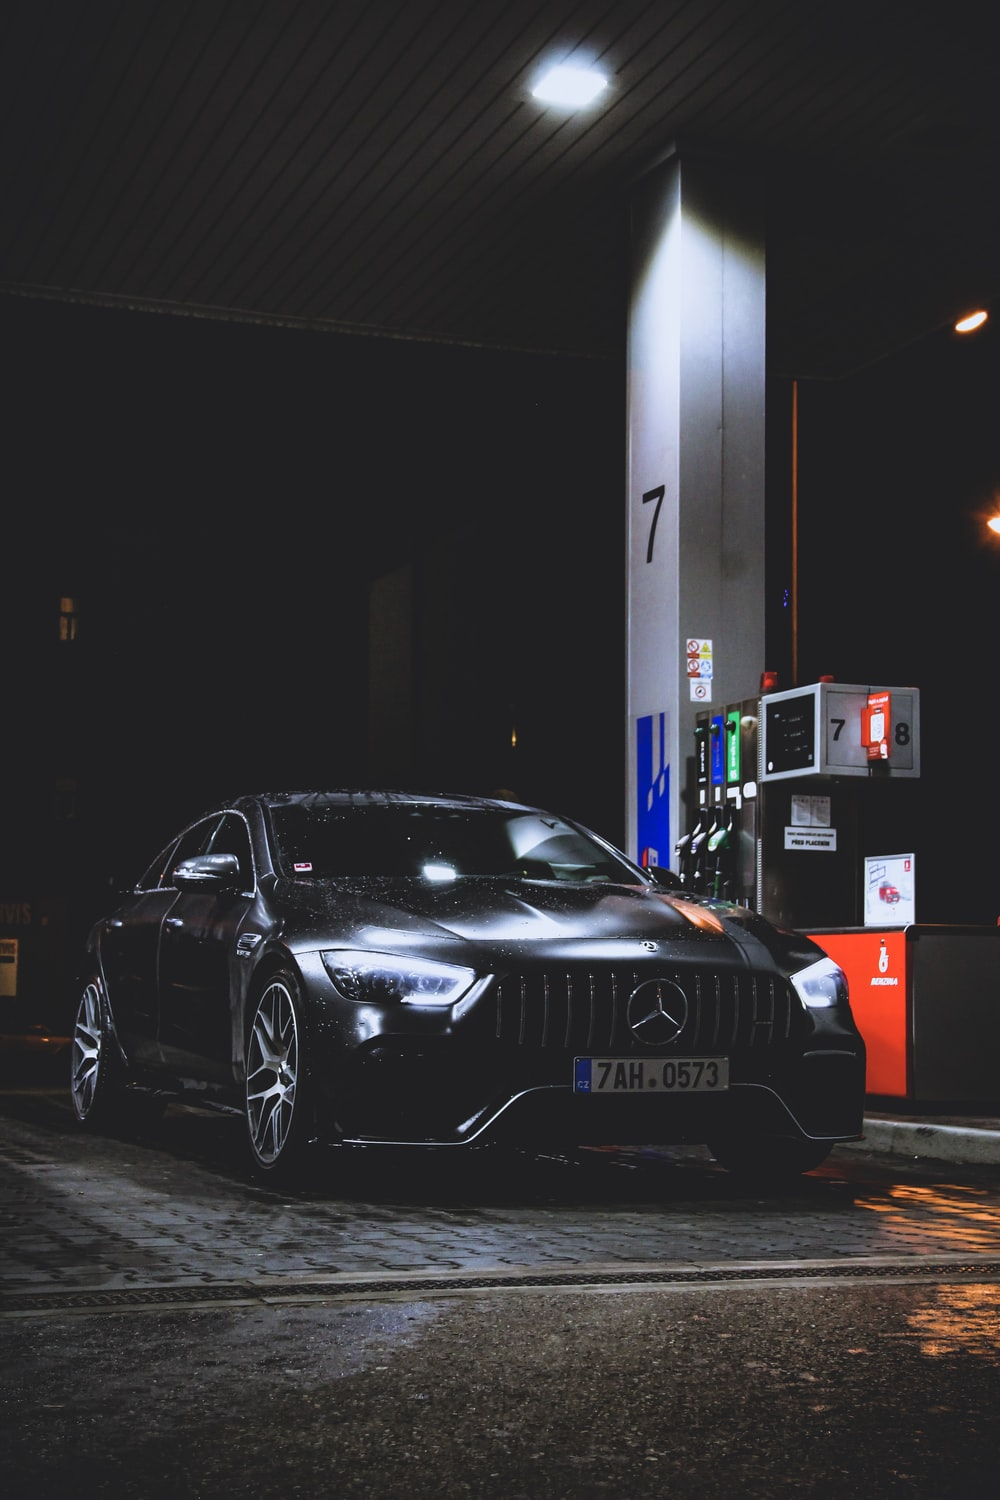 black Mercedes-Benz car at gas station at night